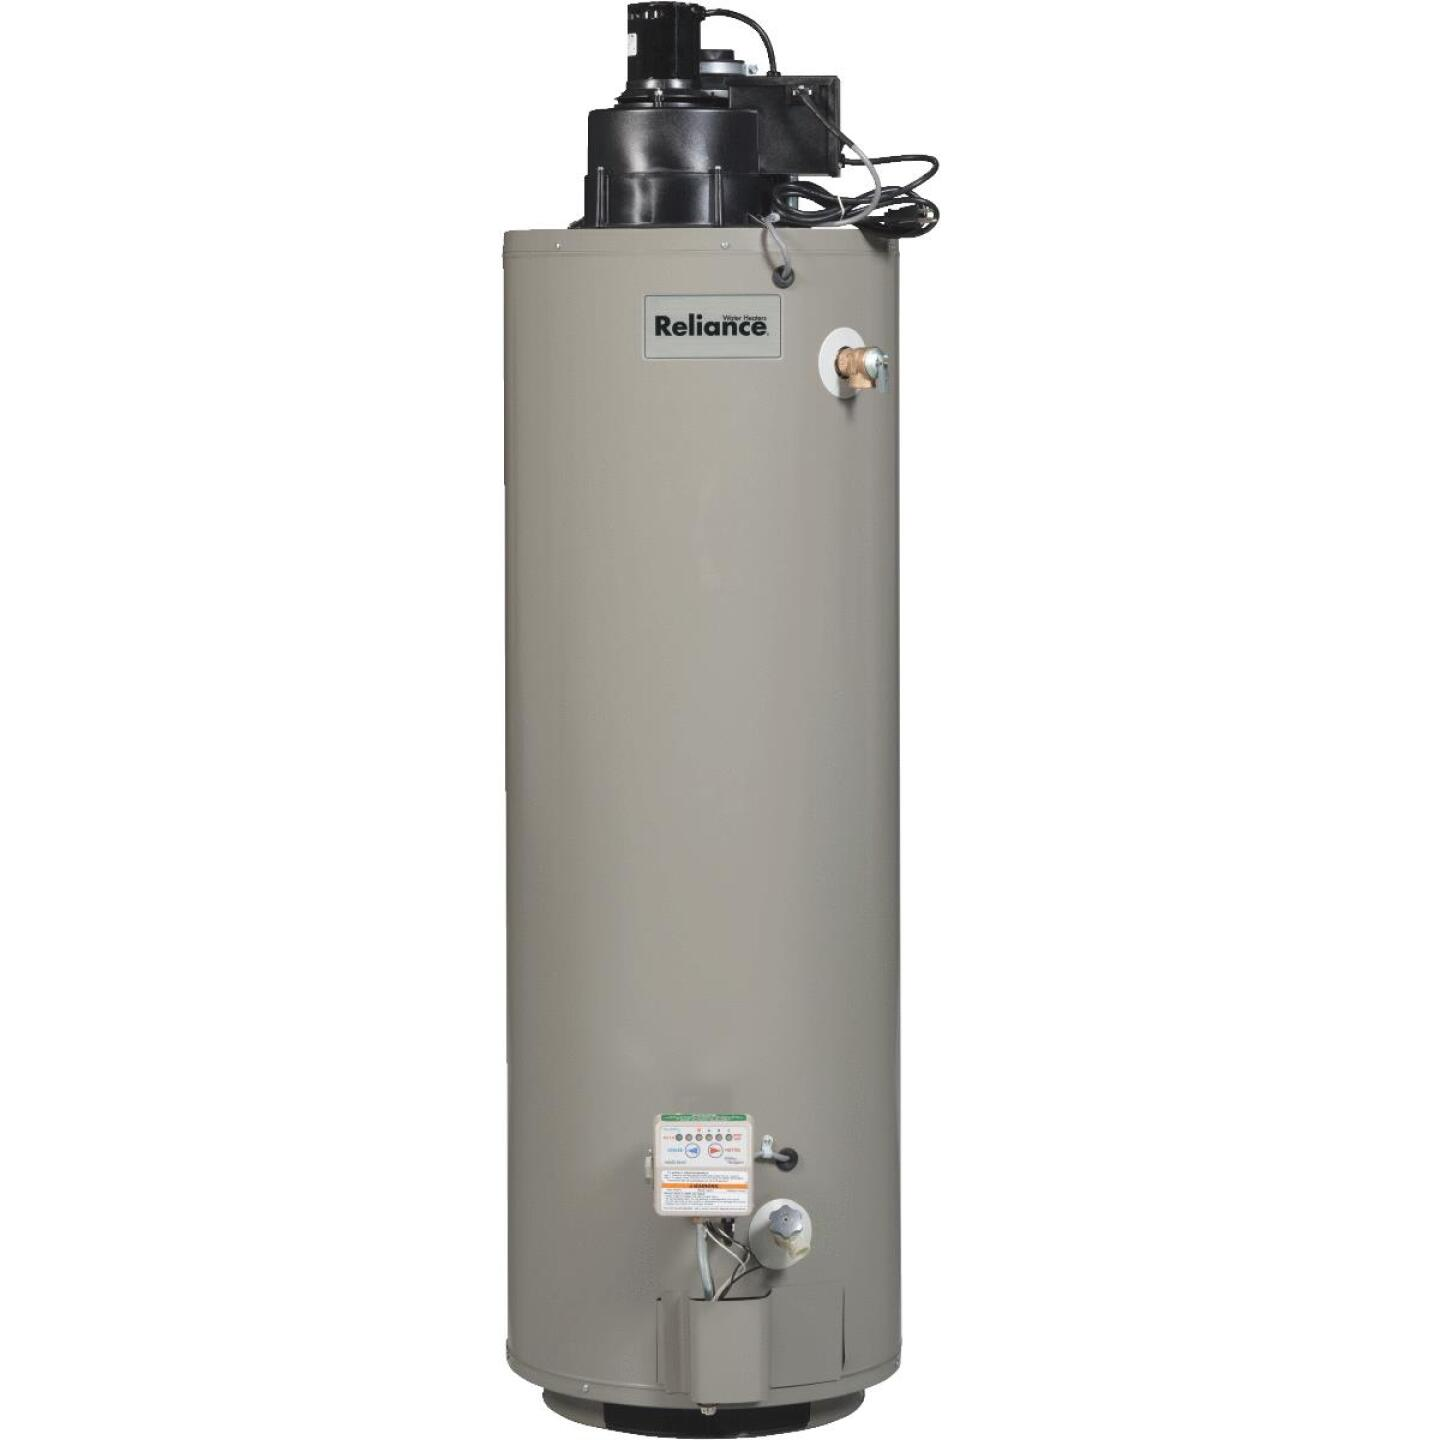 Reliance 40 Gal. Tall 6yr 50,000 BTU Liquid Propane (LP) Gas Water Heater with Power Vent Image 1